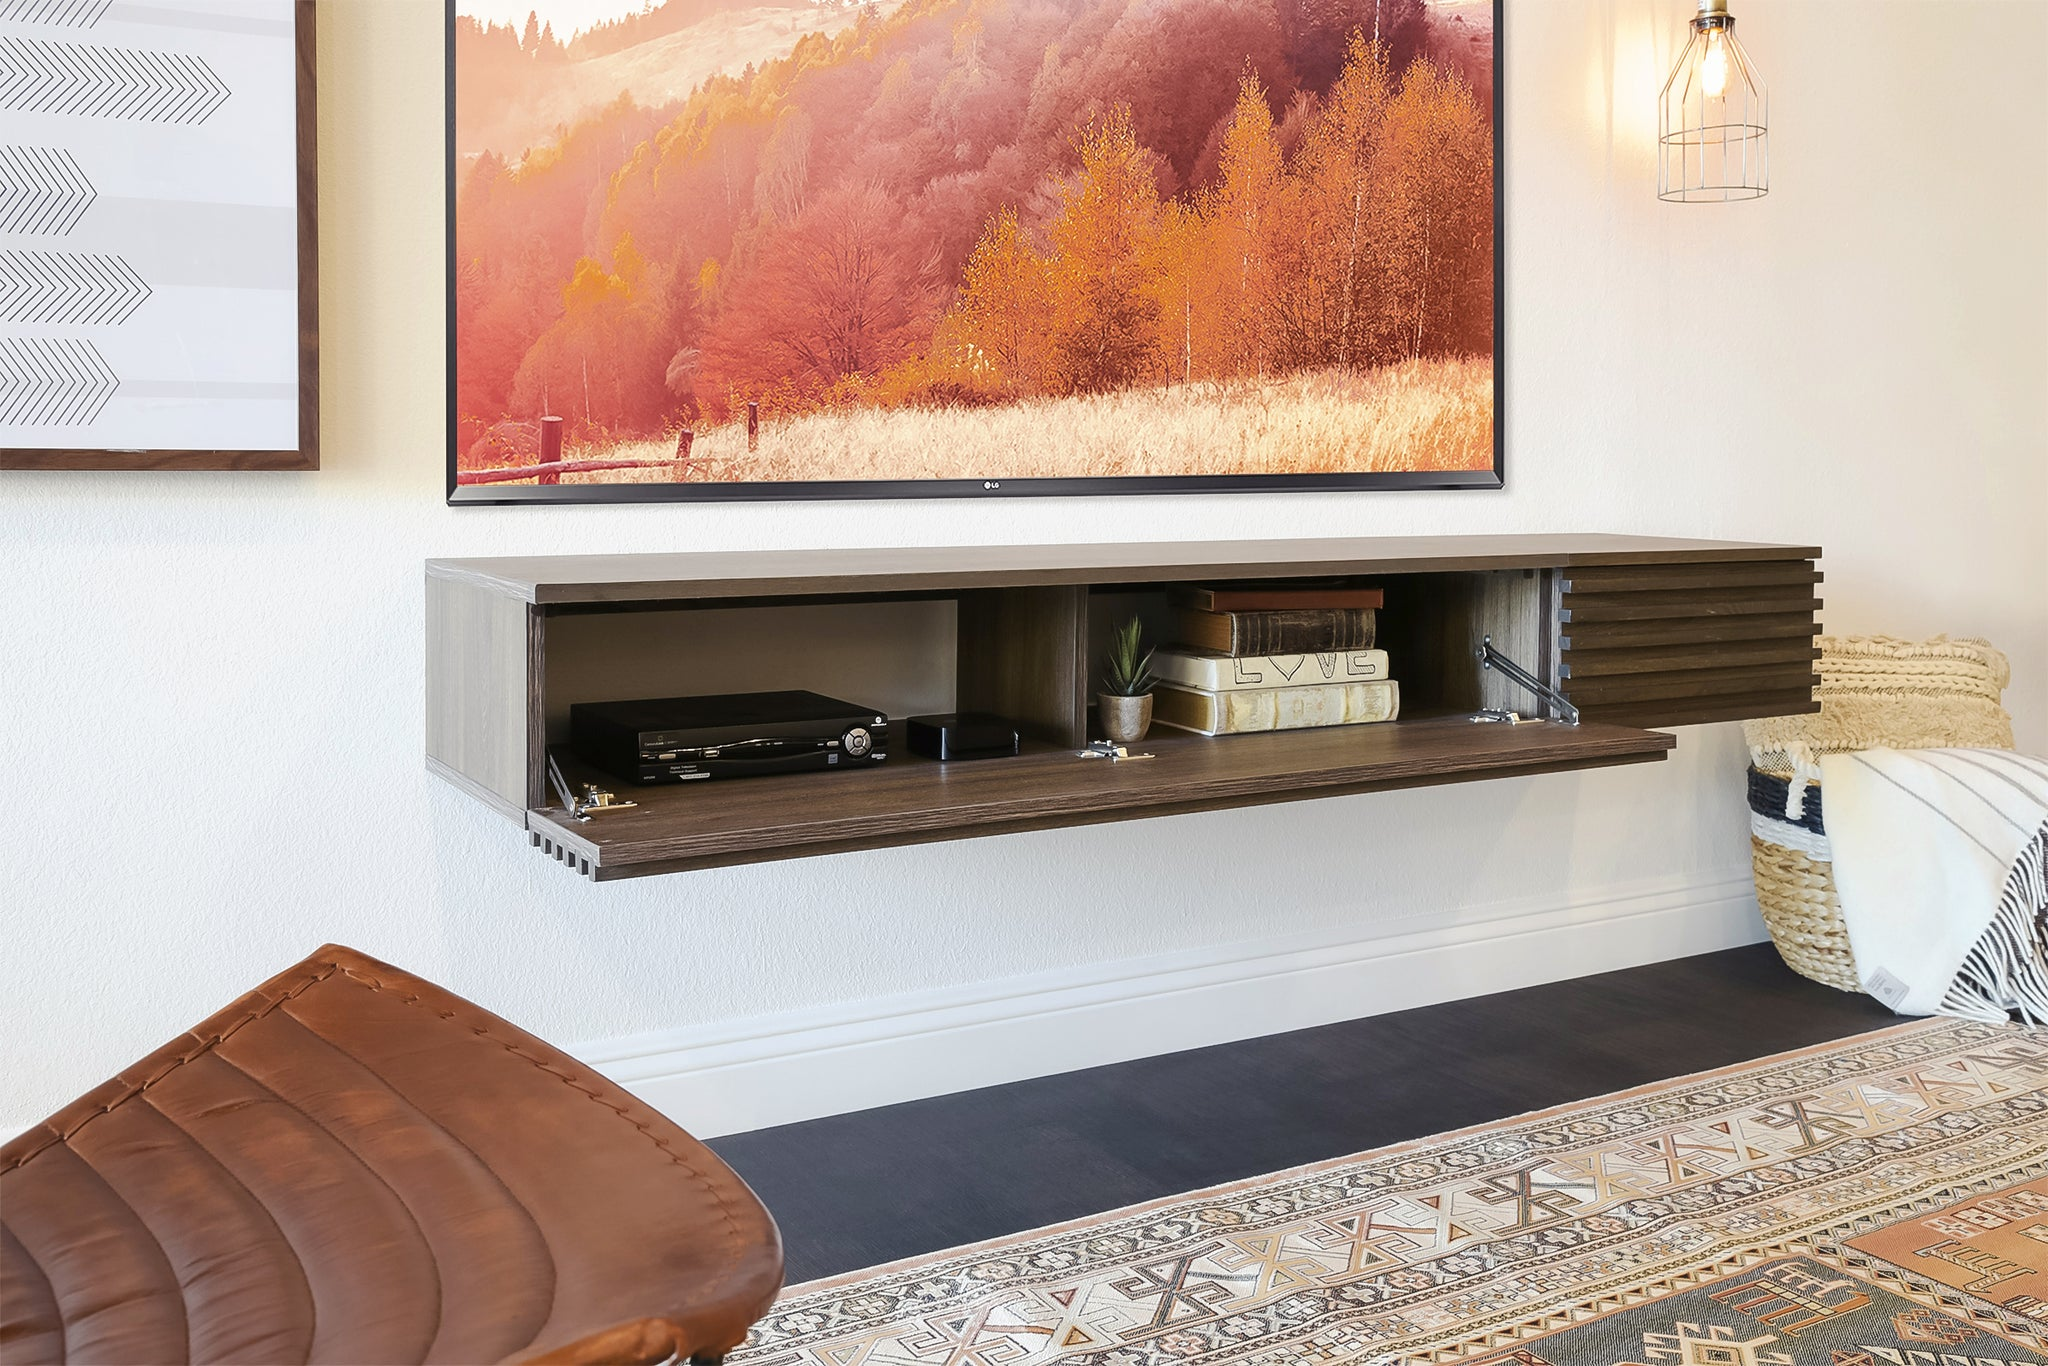 Floating TV Console - Lotus II - Weathered Brown